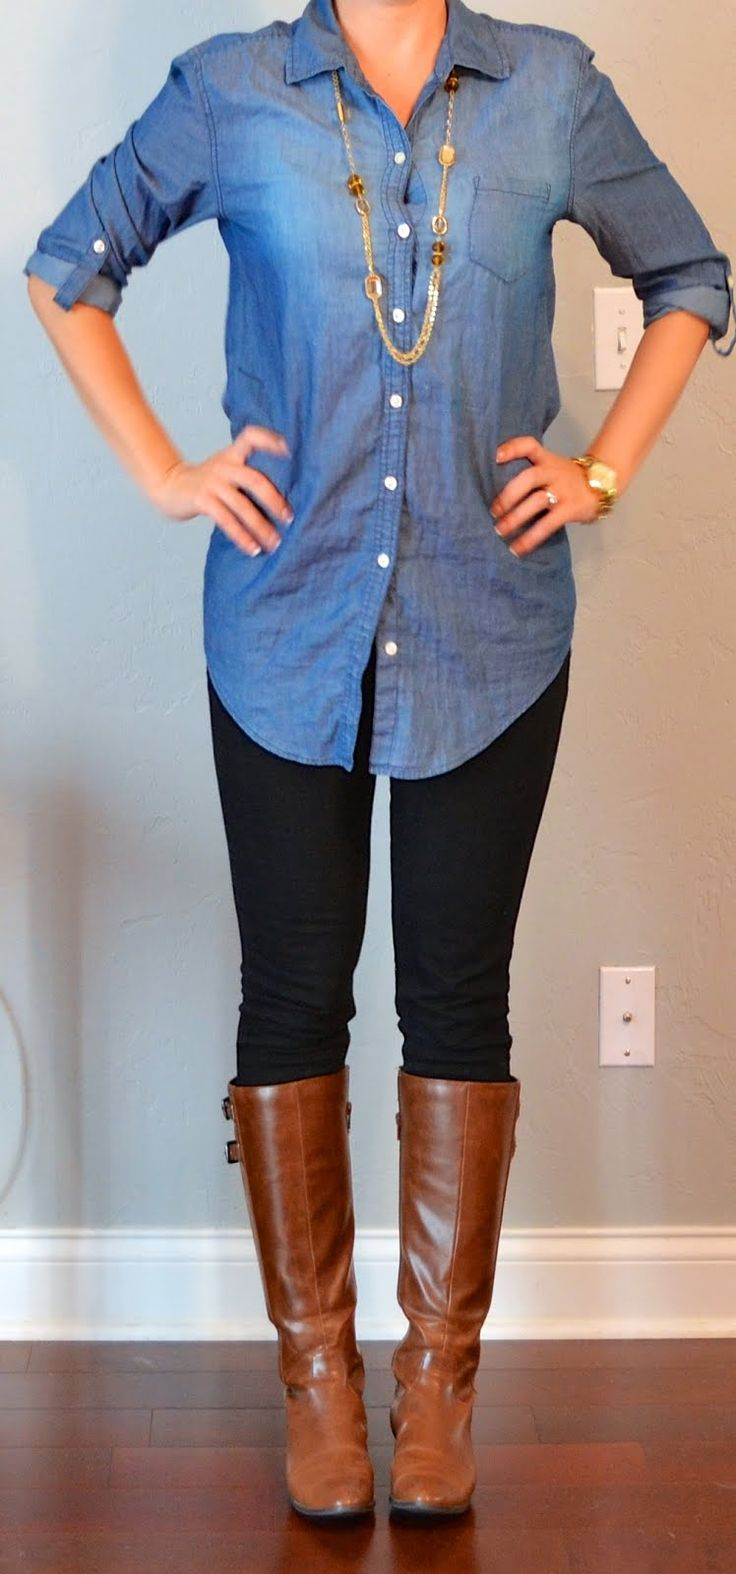 red pants with old navy chambray shirt | Outfit Posts: (outfits 1-5) one suitcase: winter vacation capsule ...